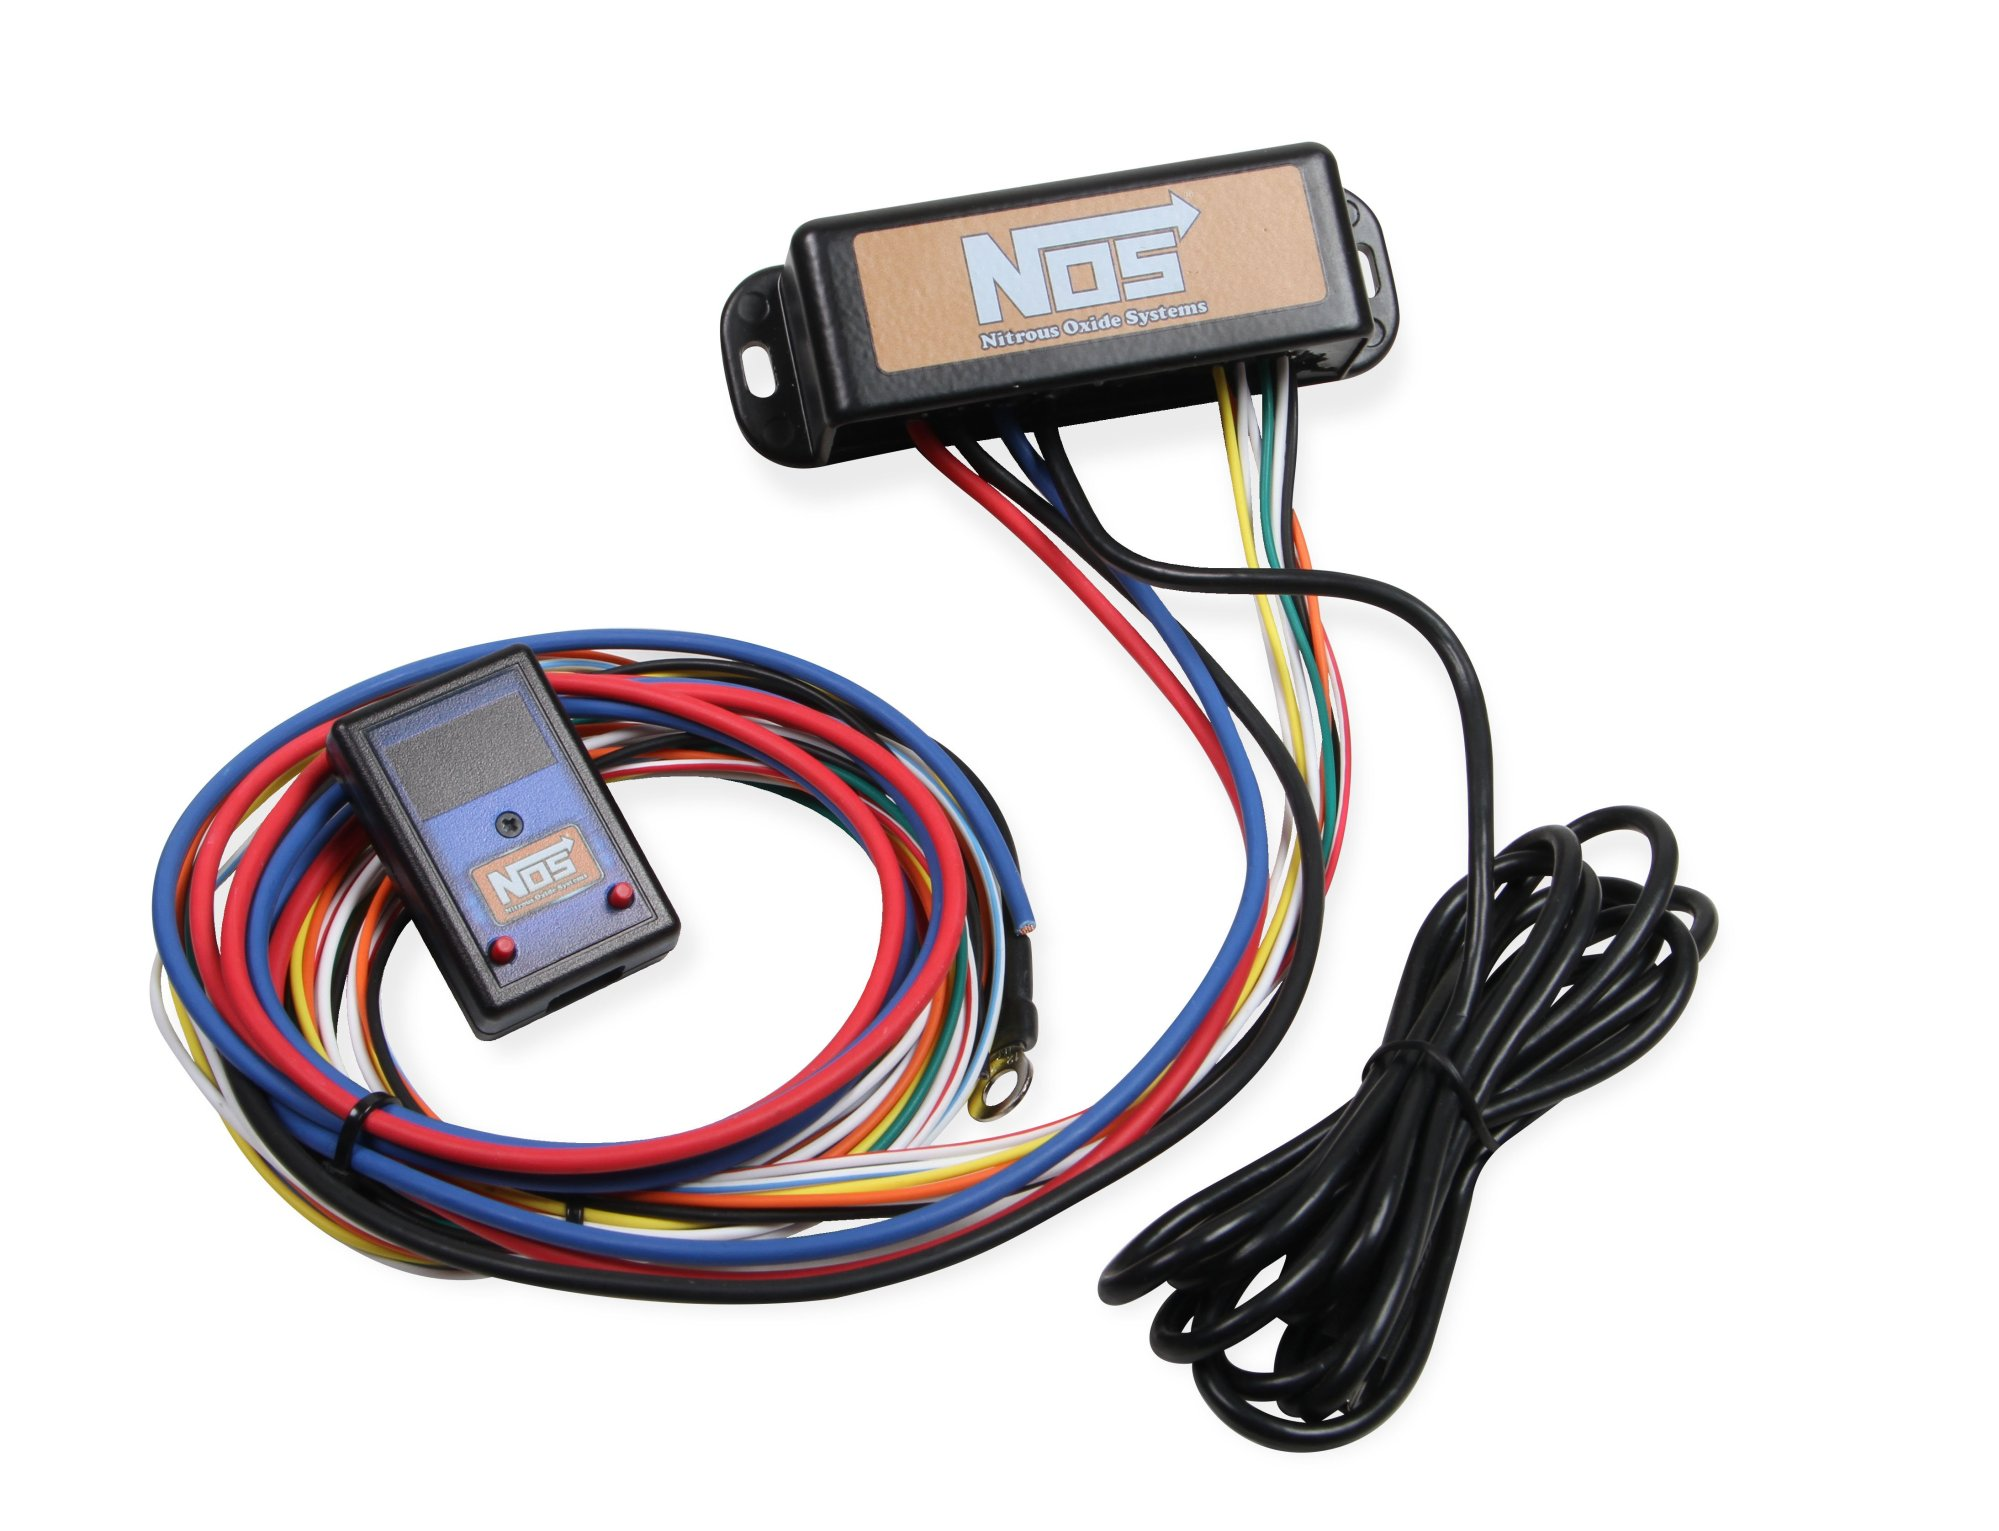 hight resolution of 15974nos nos mini 2 stage progressive nitrous controller image